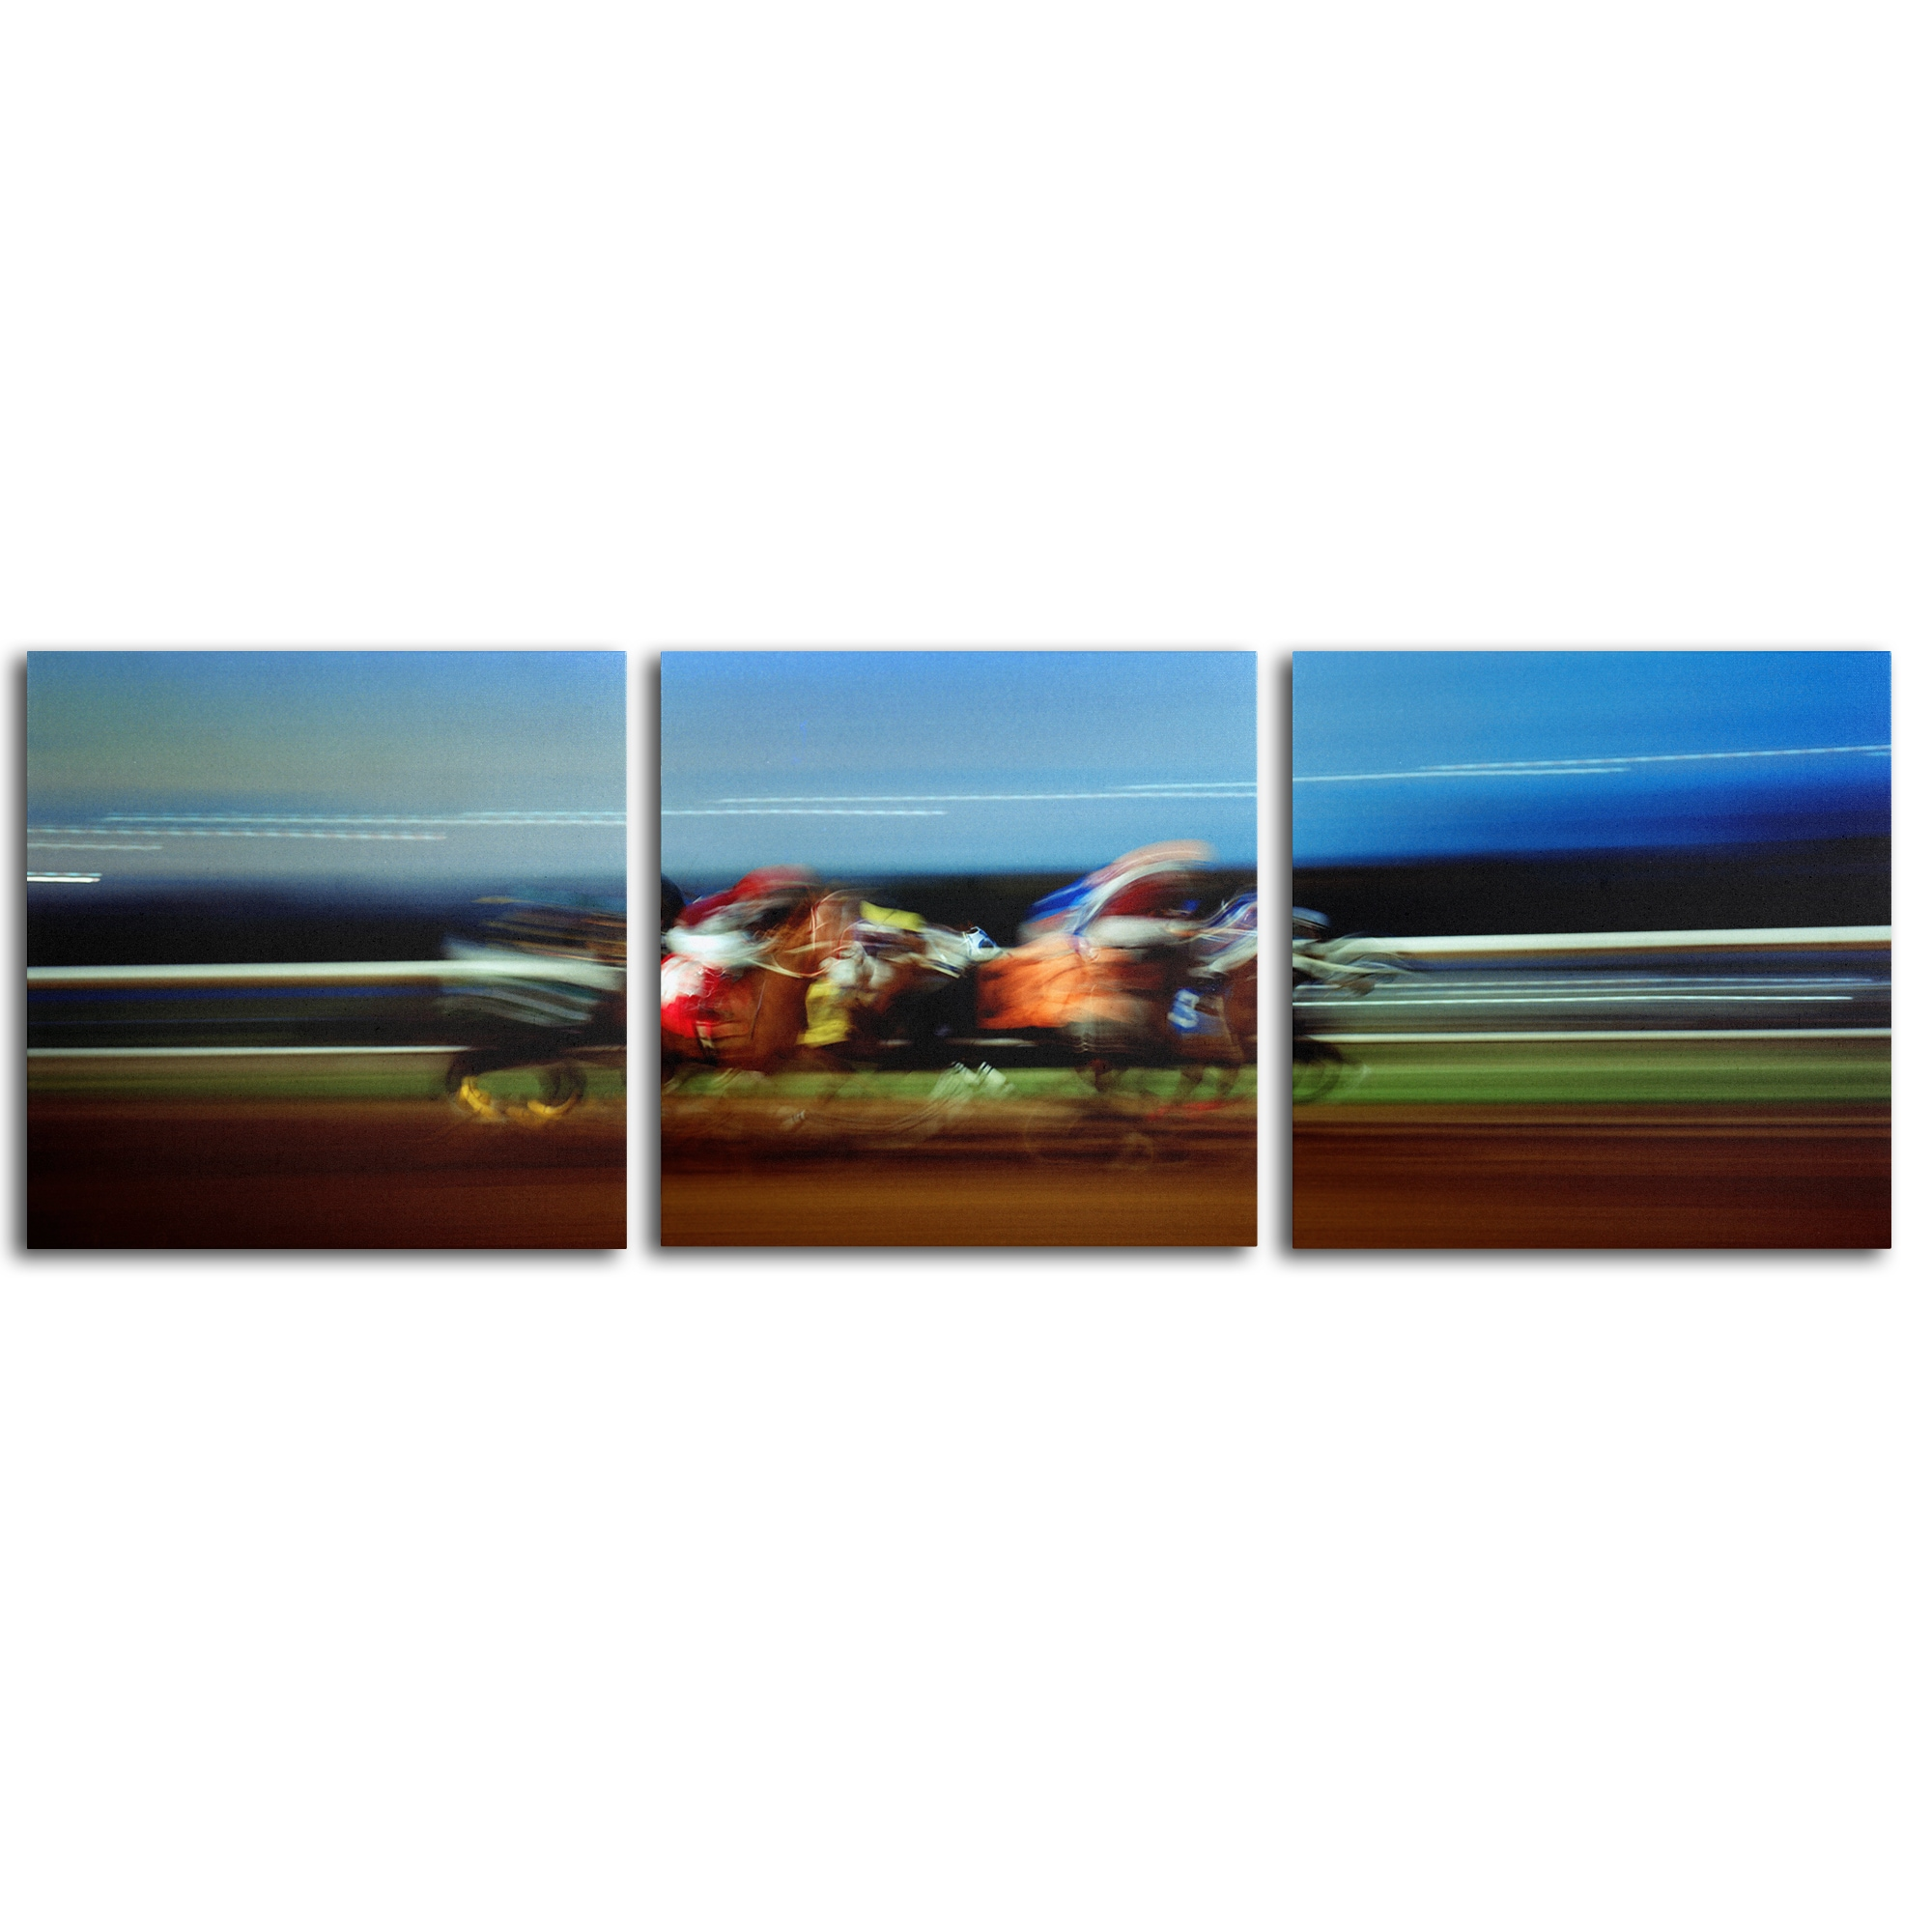 Finish Line by Preston set of 3 - 18x18 Ready to Hang!